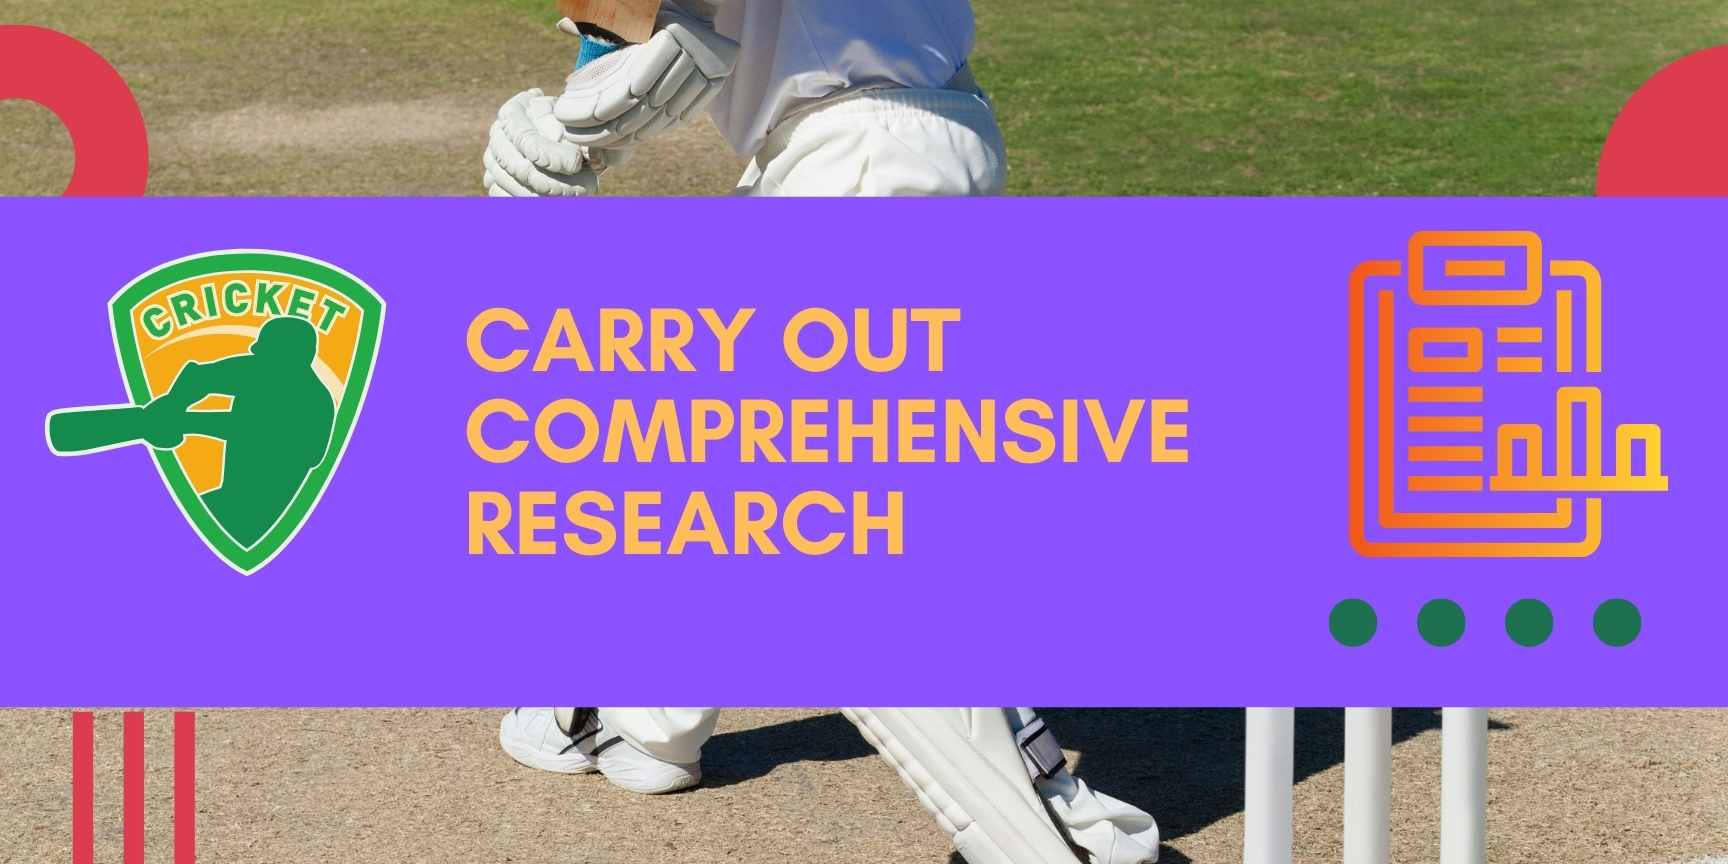 carry out comprehensive research